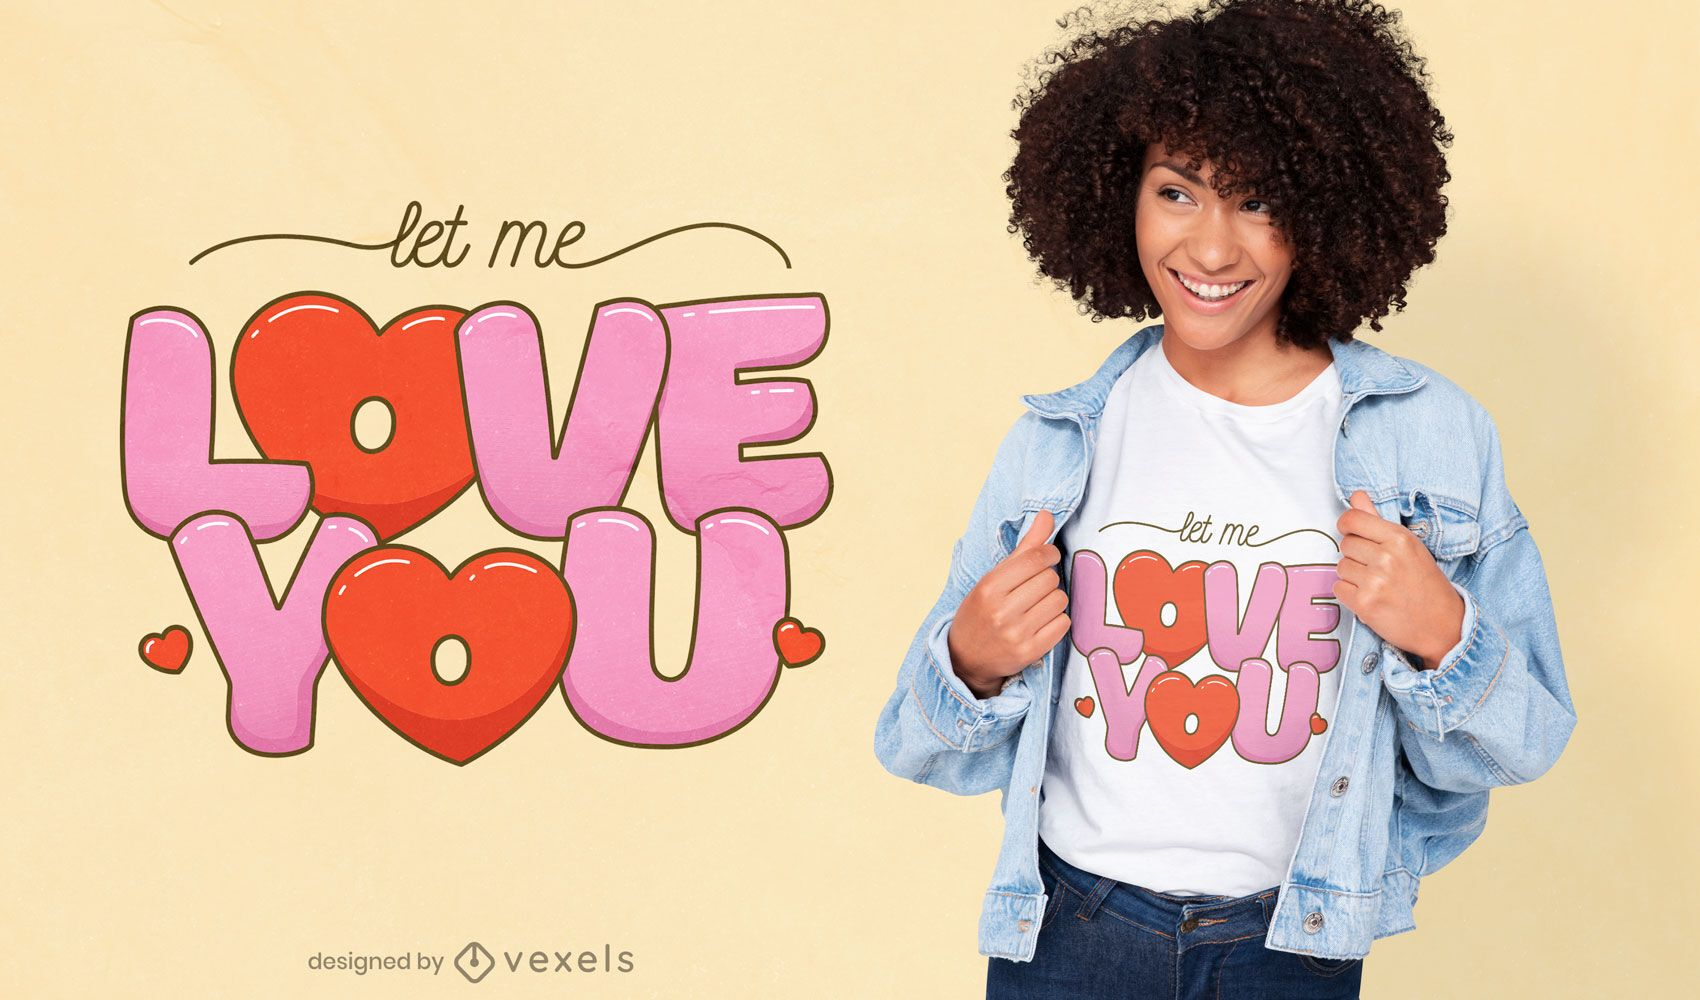 Love you heart quote t-shirt design